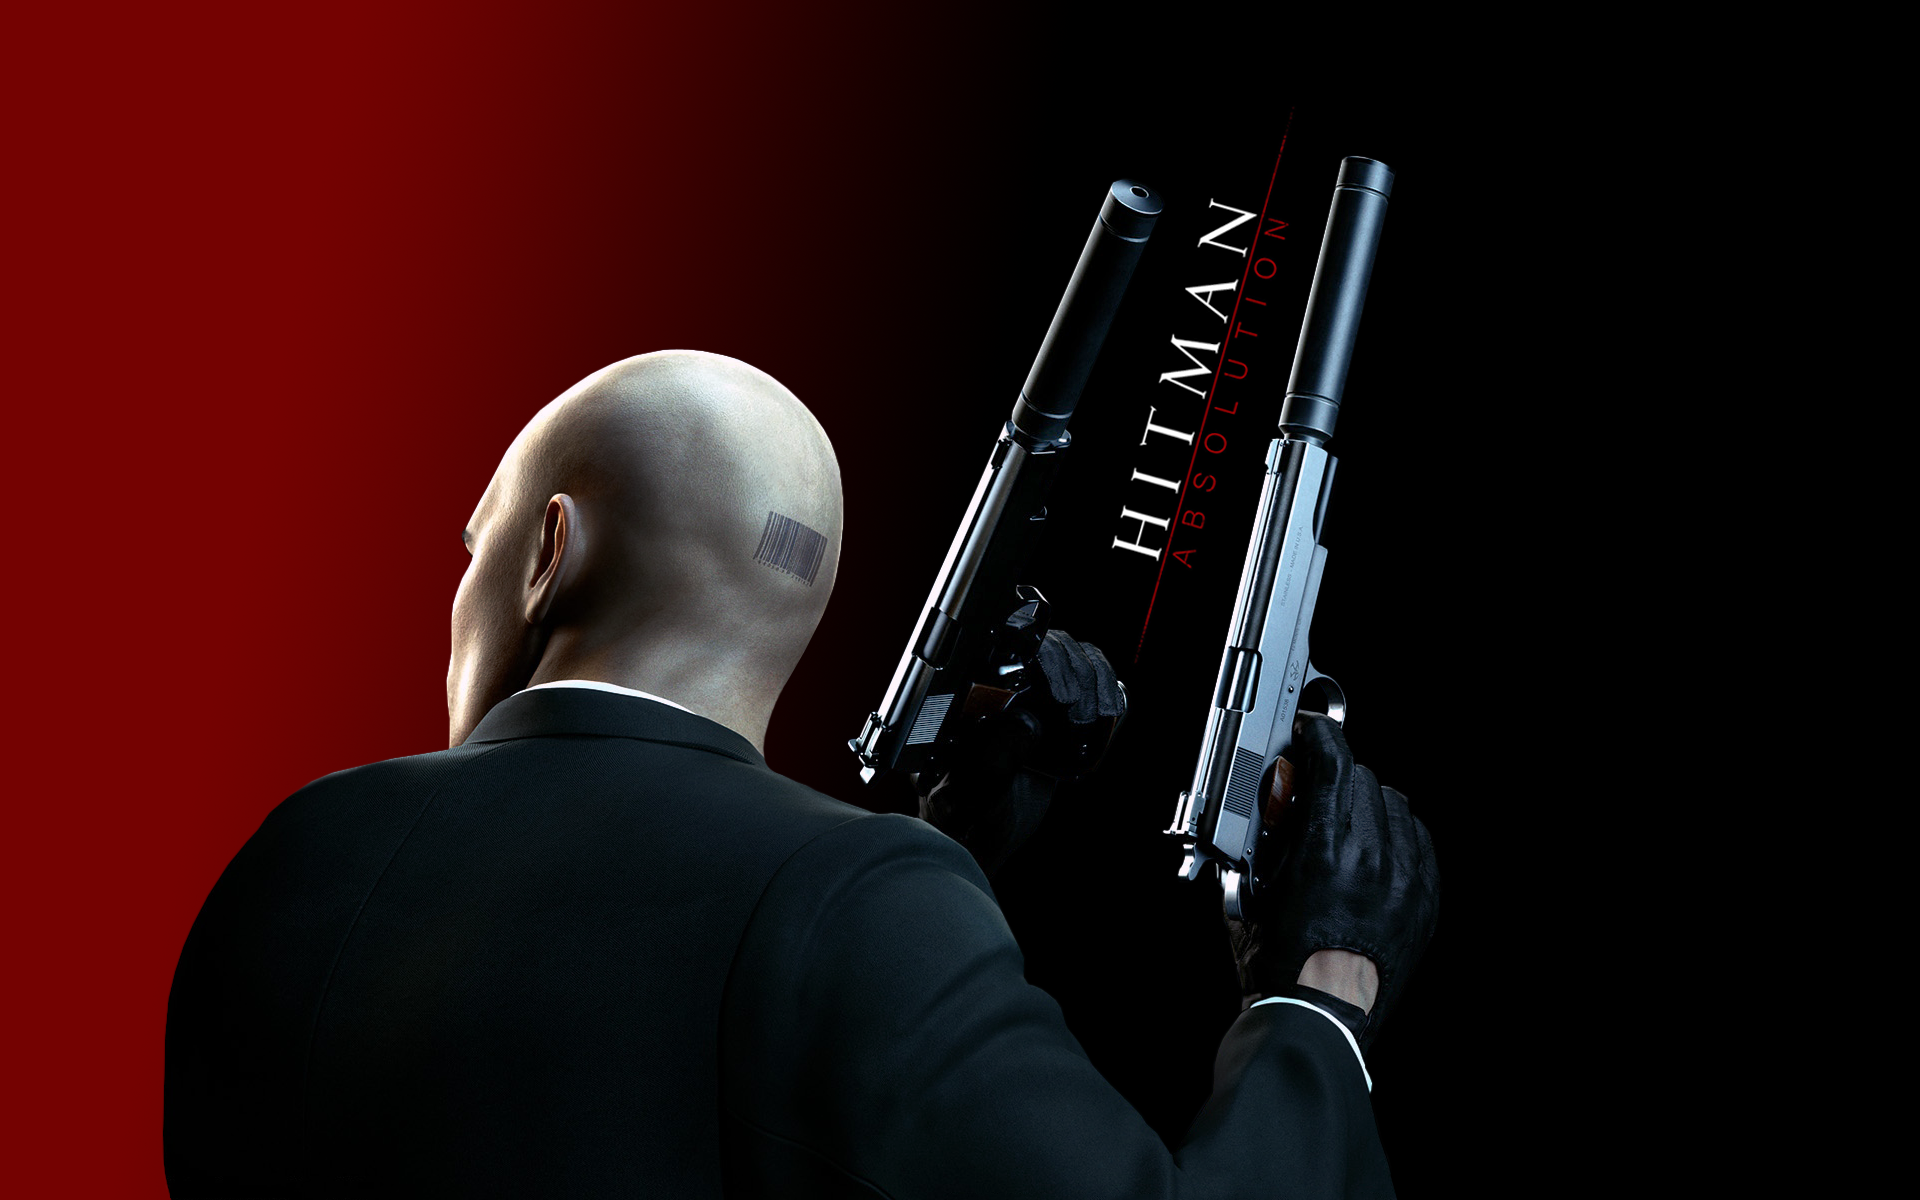 75 Hitman Wallpapers On Wallpapersafari